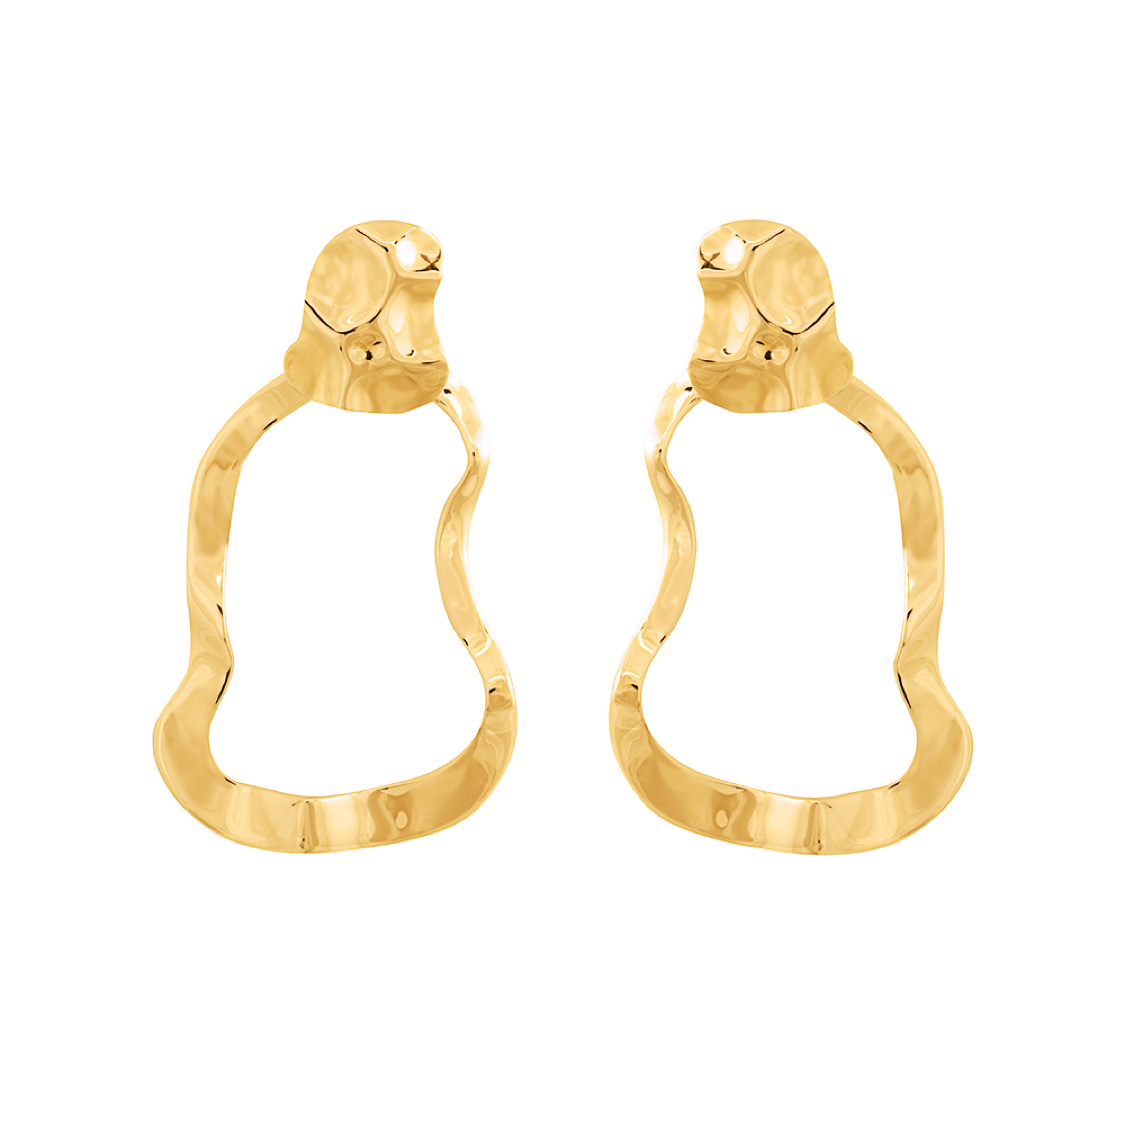 Republic Road Mirer Reverie Earring in Gold | Available Now at the Mint Republic